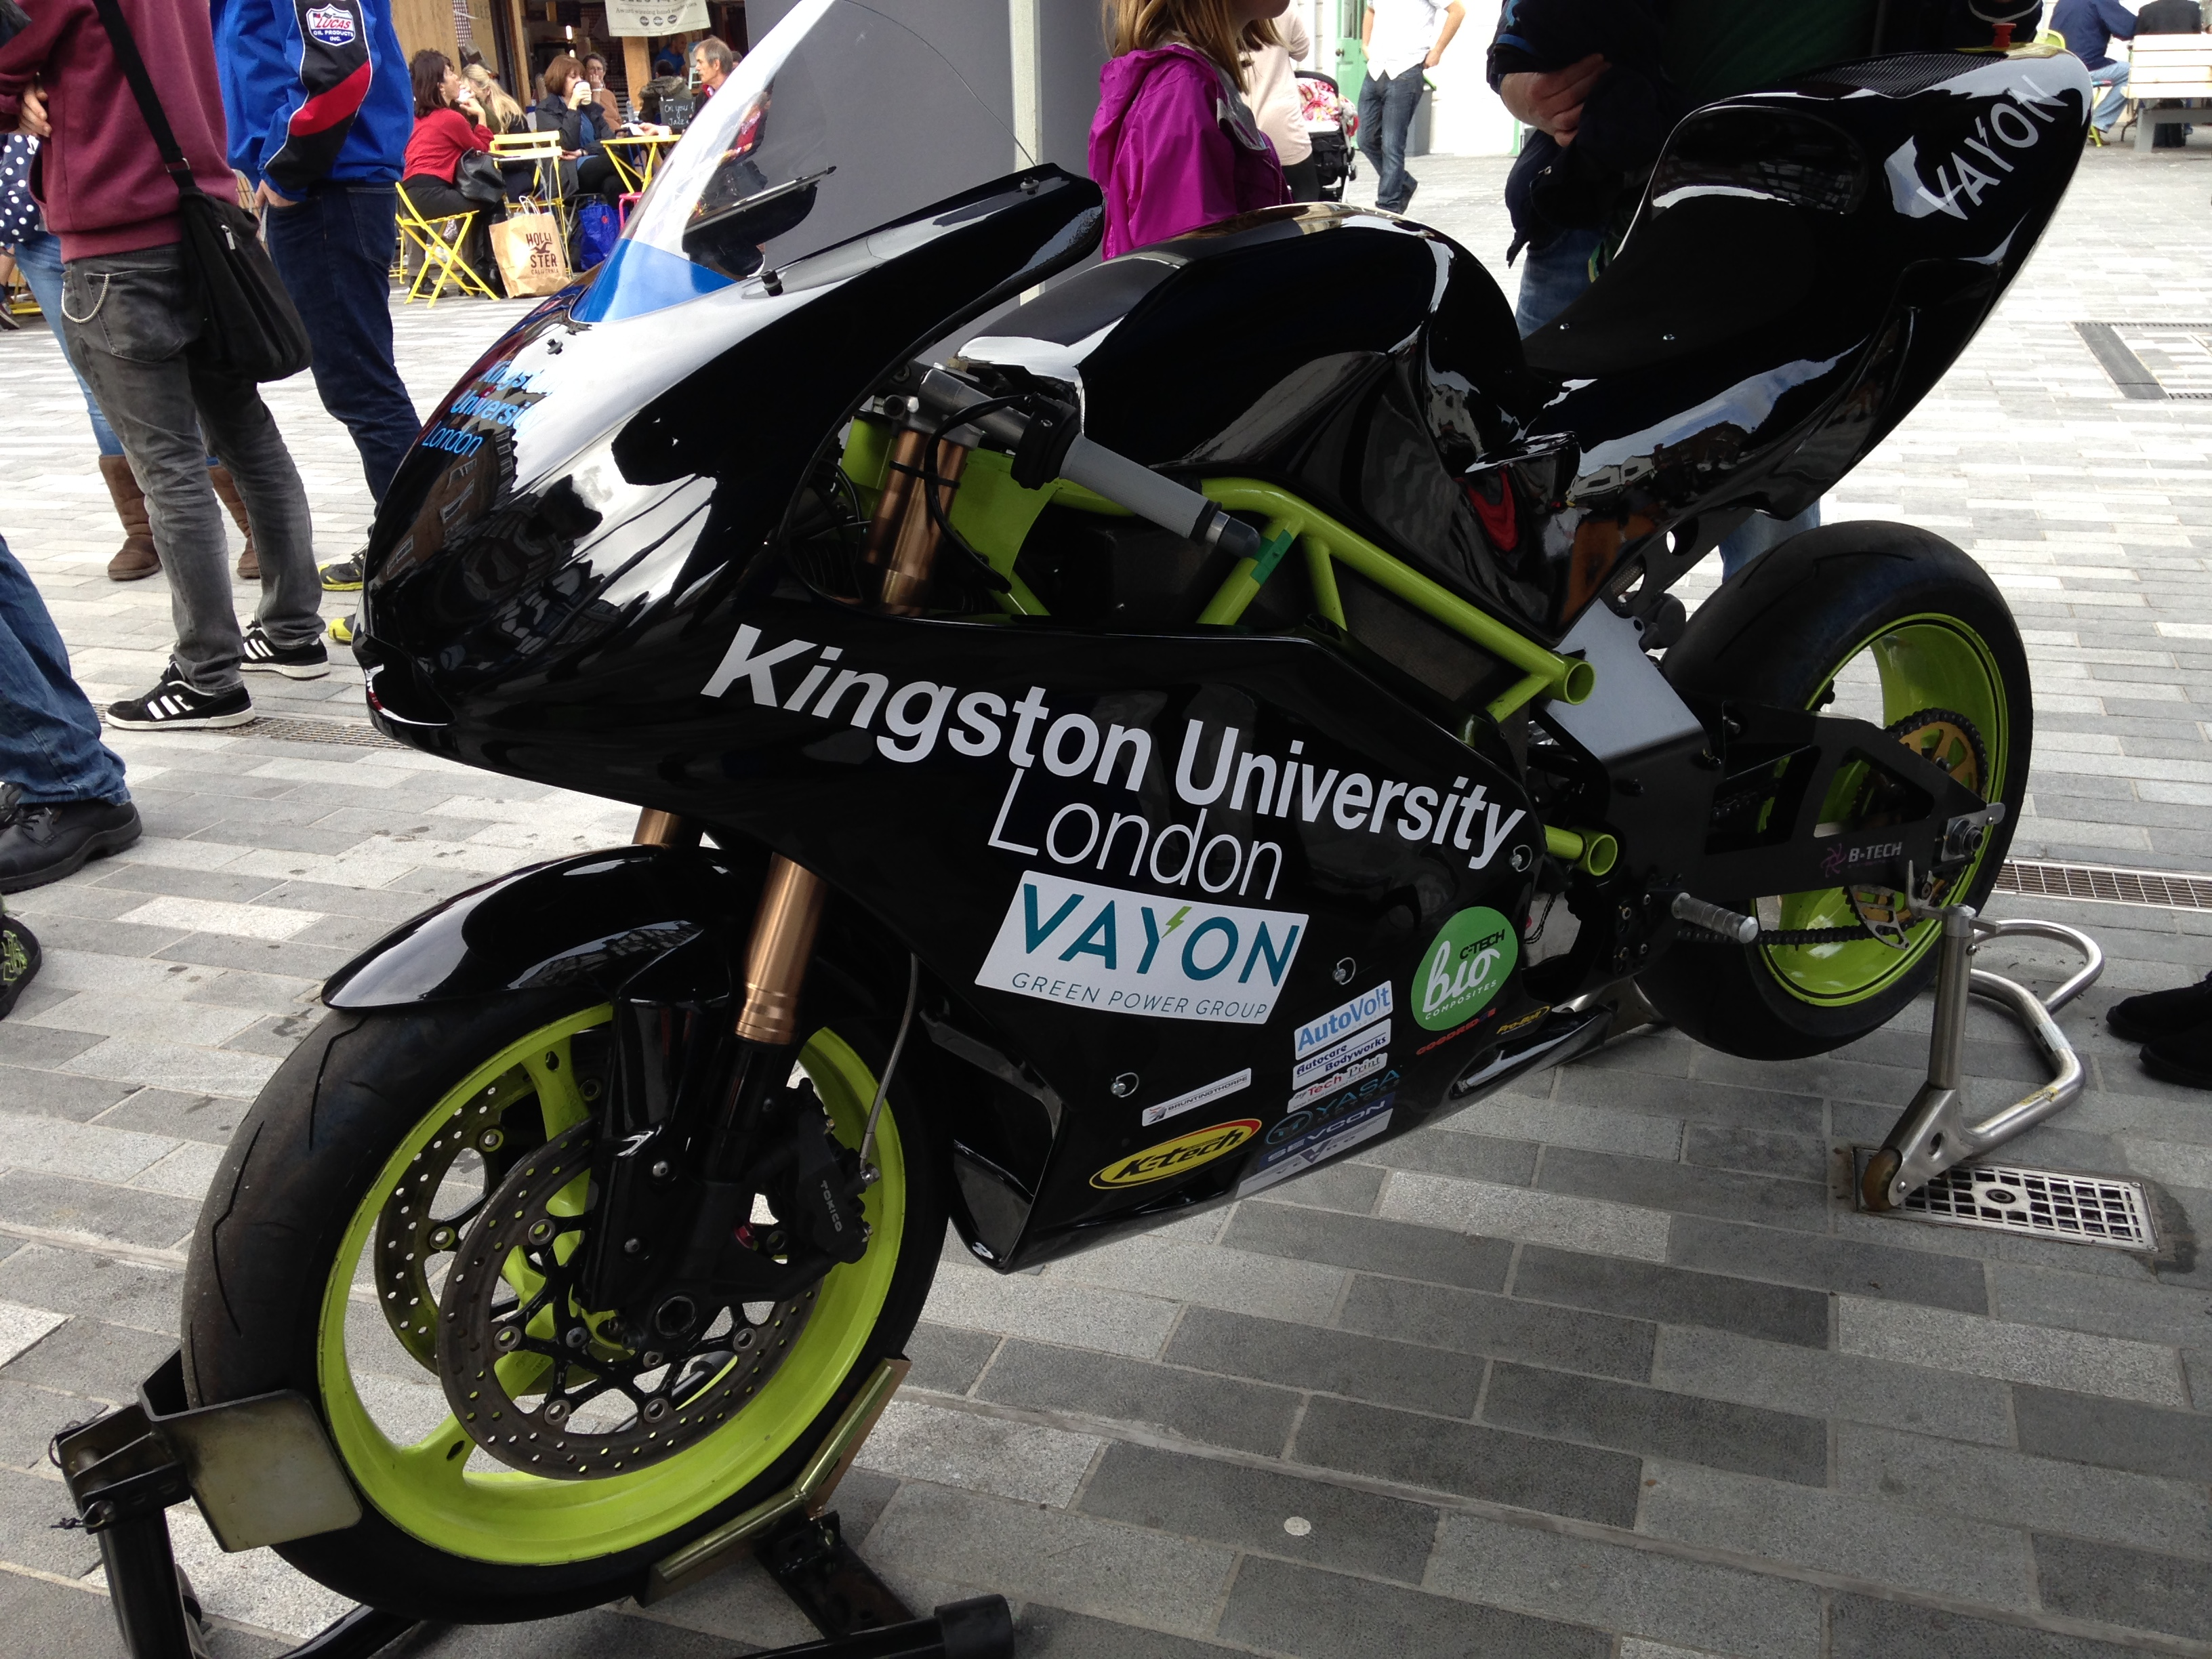 Ion Horse record breaking bike in the Market square